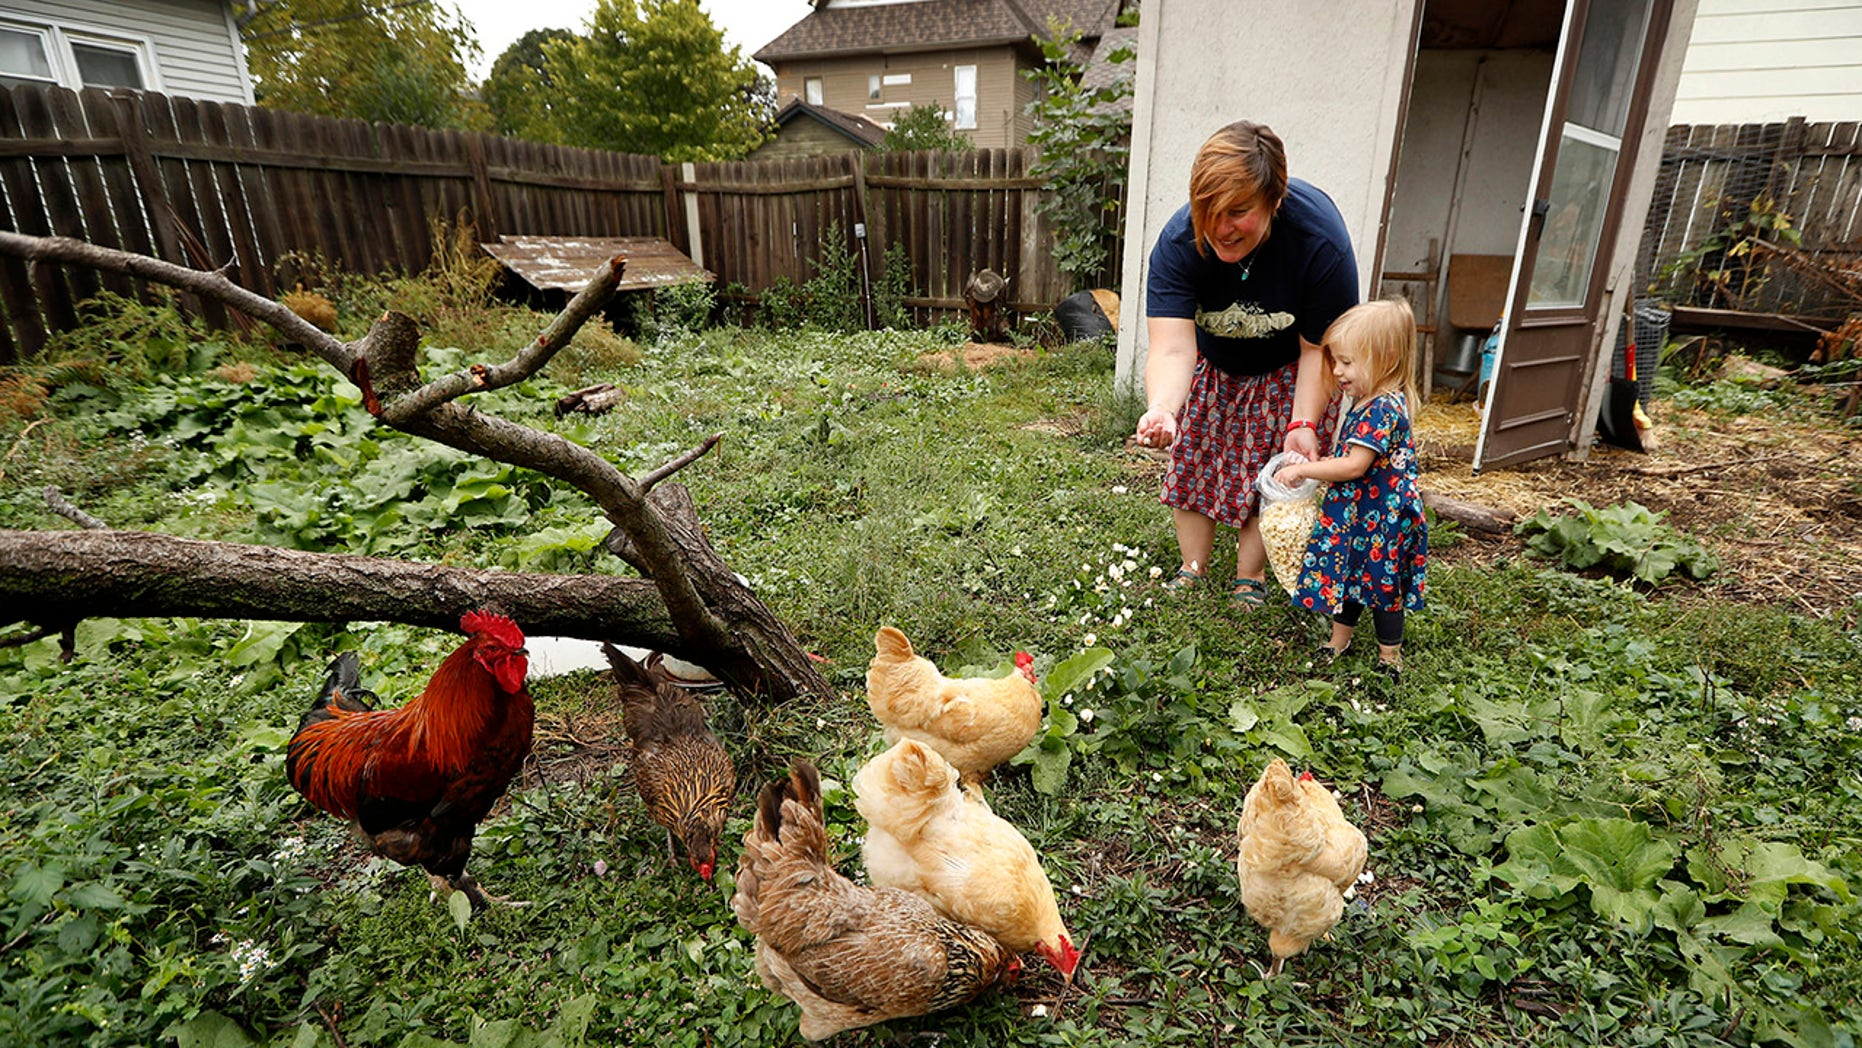 Sept. 26, 2017: In this photo, Tanya Keith of Des Moines, Iowa, and her daughter Iolana feed their chickens in the backyard of their home.